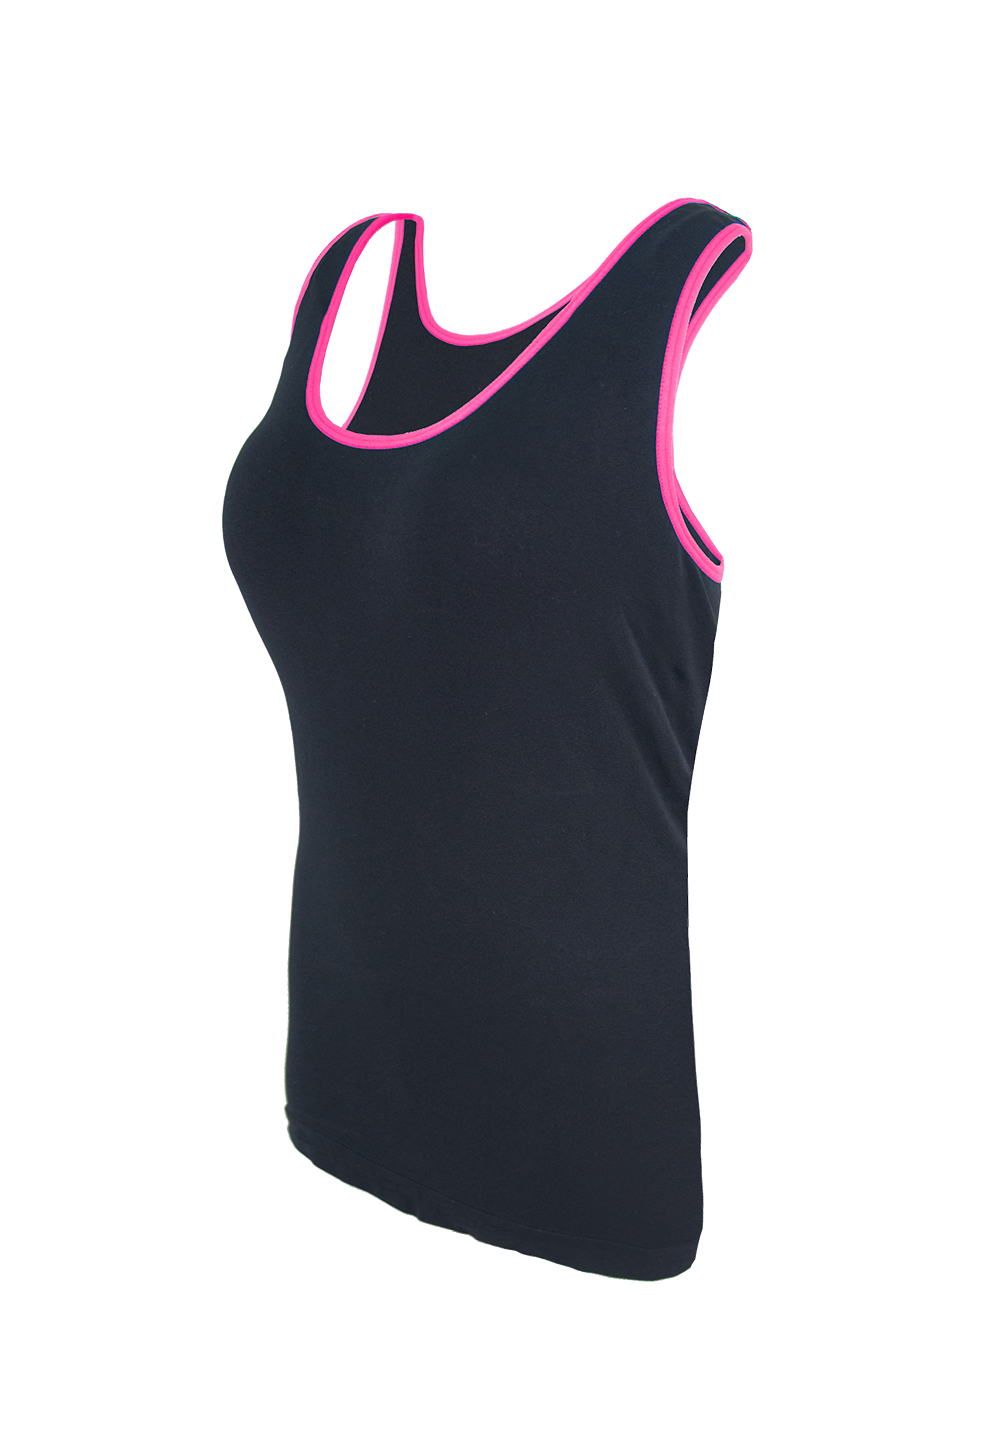 Built-in-Bra Tank Top